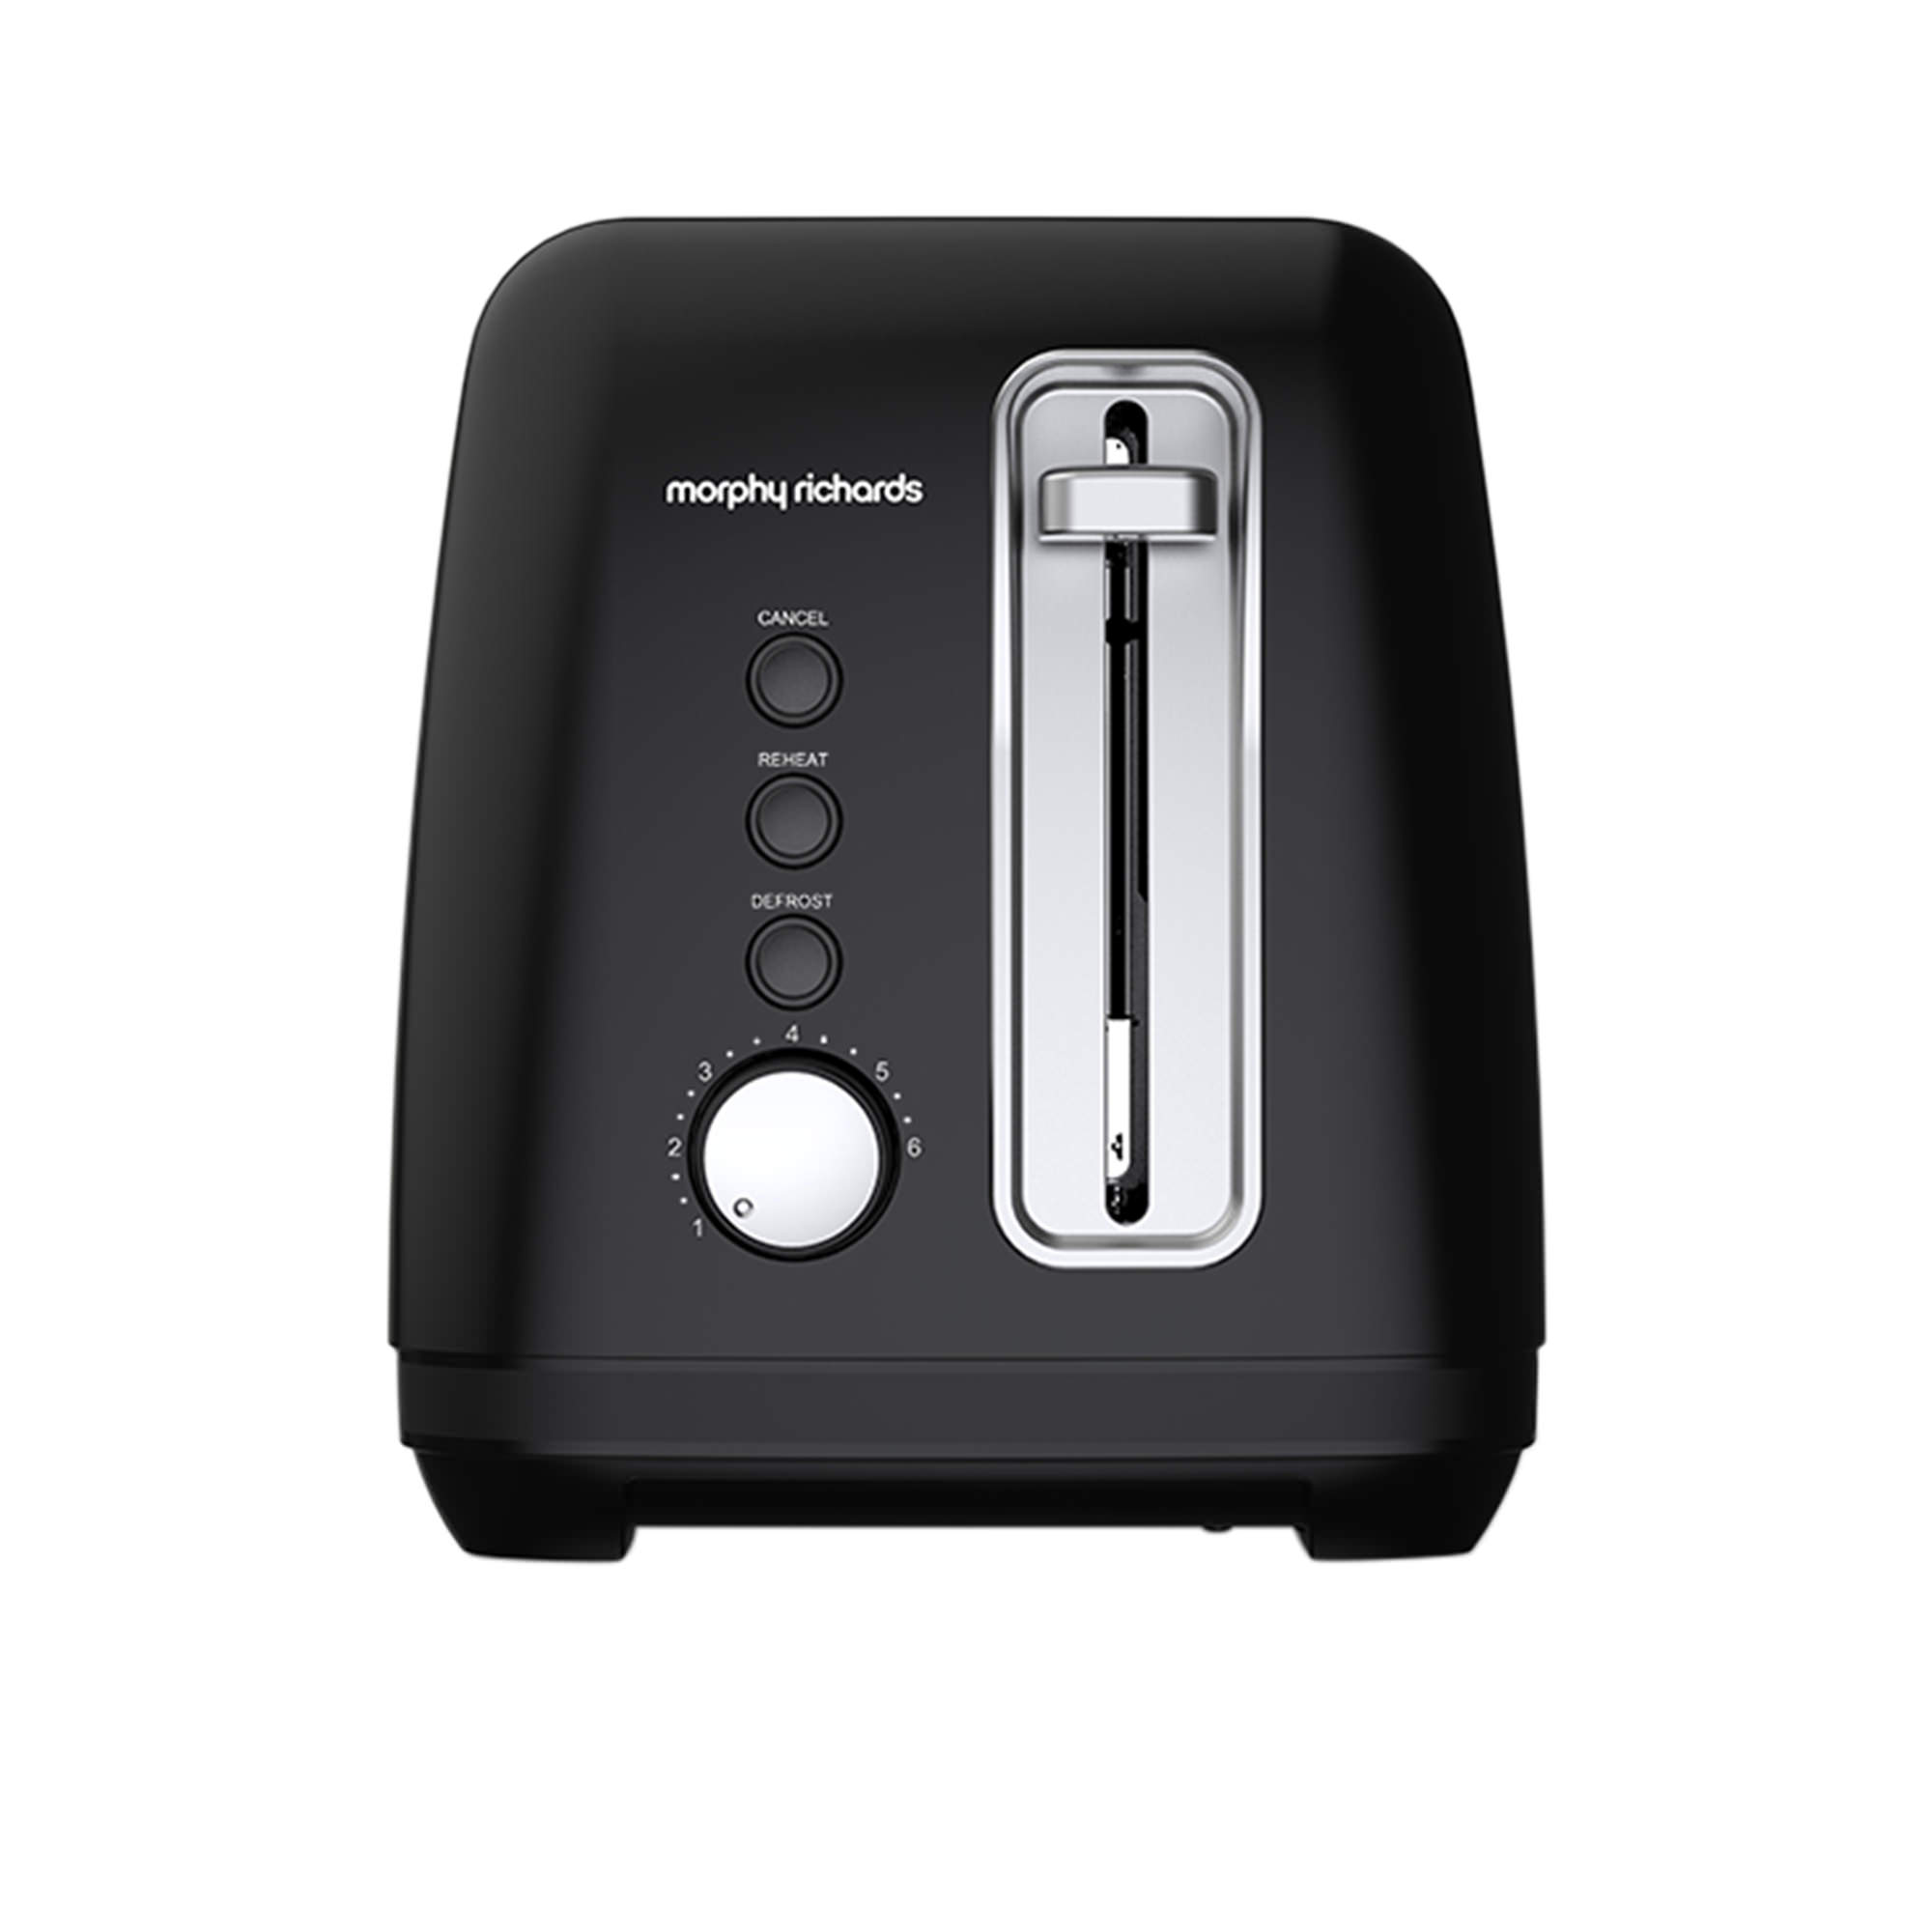 Morphy Richards Equip 2 Slice Toaster Black